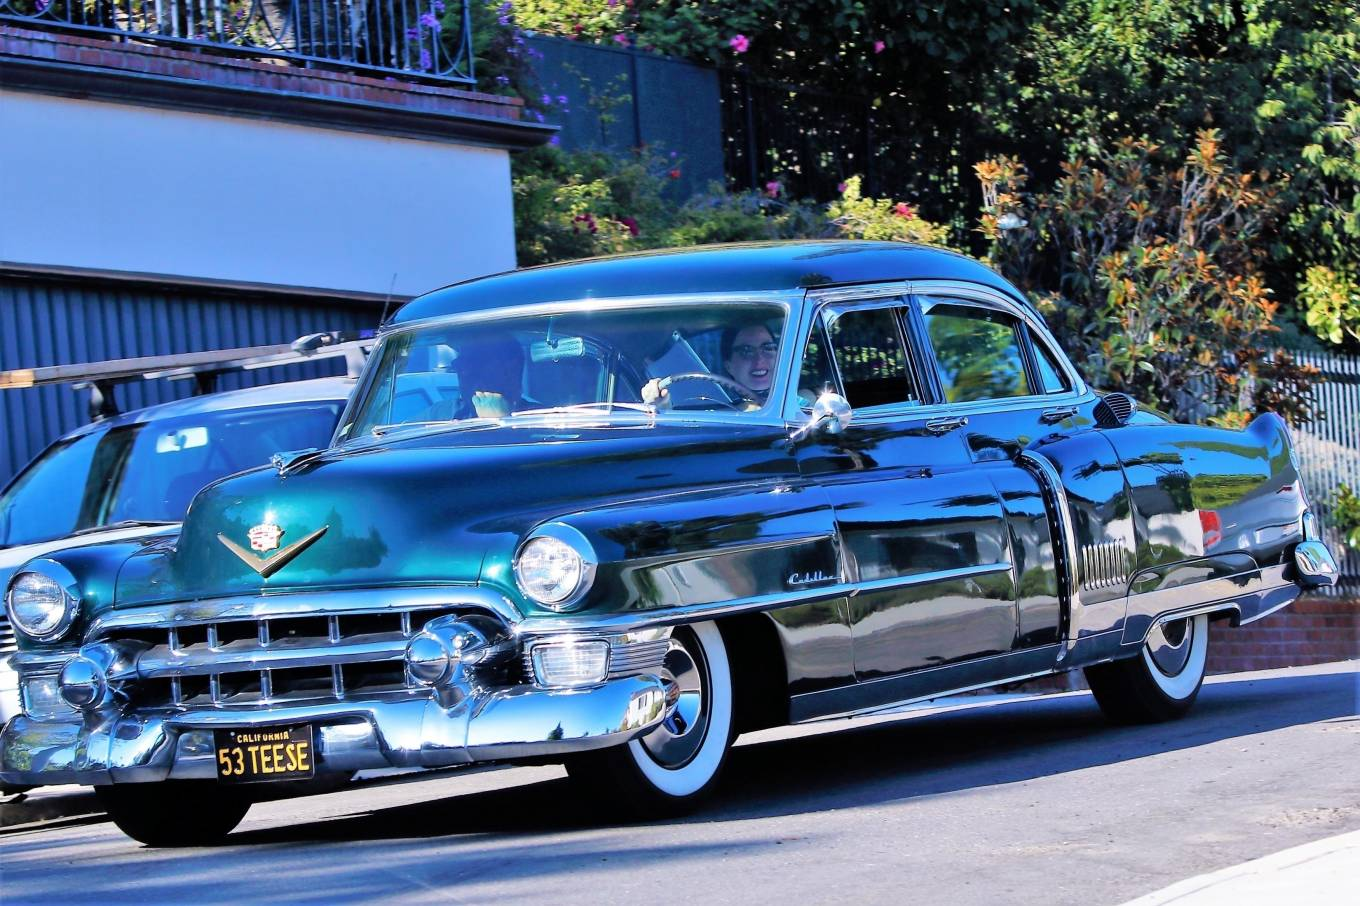 Dita Von Teese 2020 : Dita Von Teese – Takes her clean classic Chevy for a cruise in Los Angeles-06